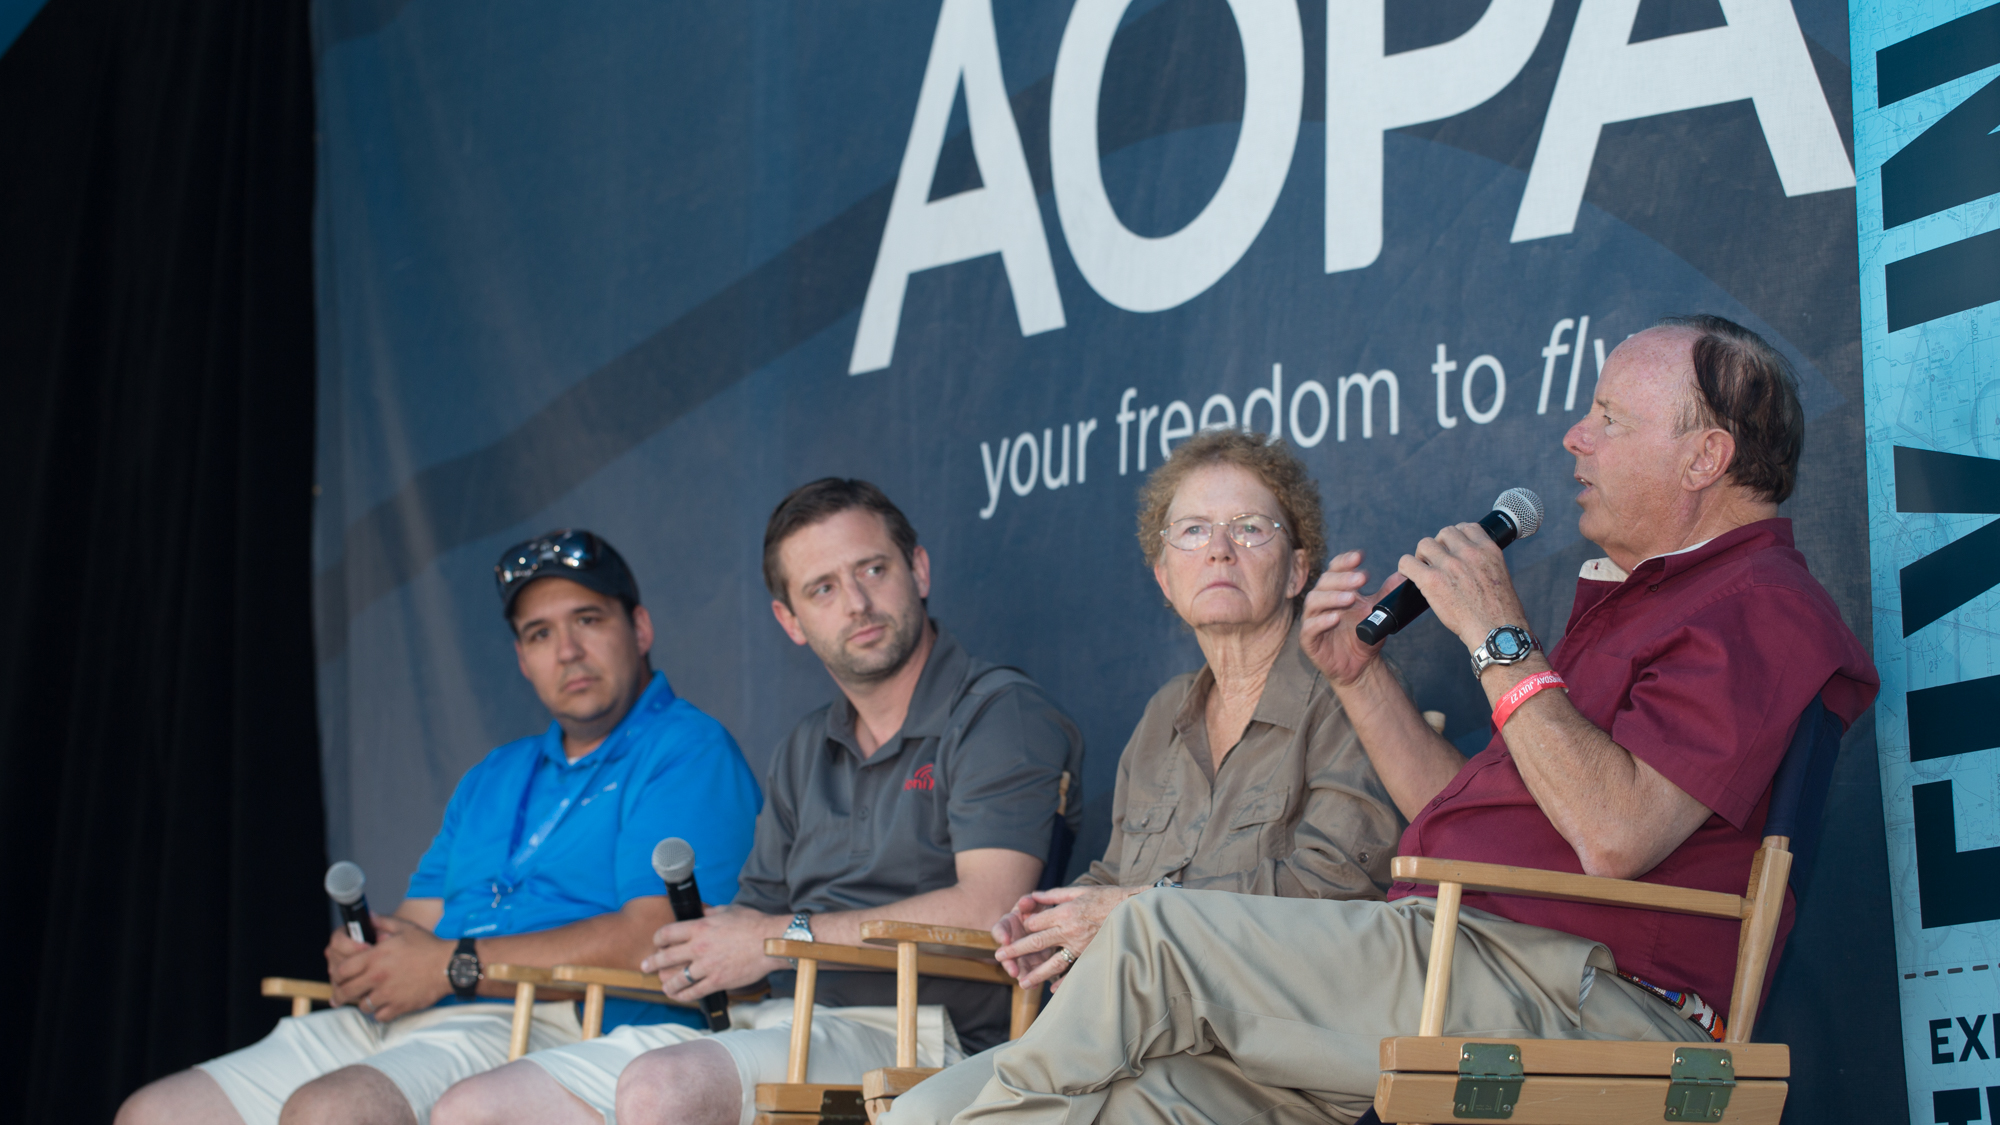 King Schools co-founder John King, right, speaks during the AOPA Drone Social at EAA AirVenture July 27. Fellow panelists include his wife and King Schools co-founder Martha King, Ryan Braun of uAvionix (center), and Colin Romberger of DARTdrones (left). Jim Moore photo.